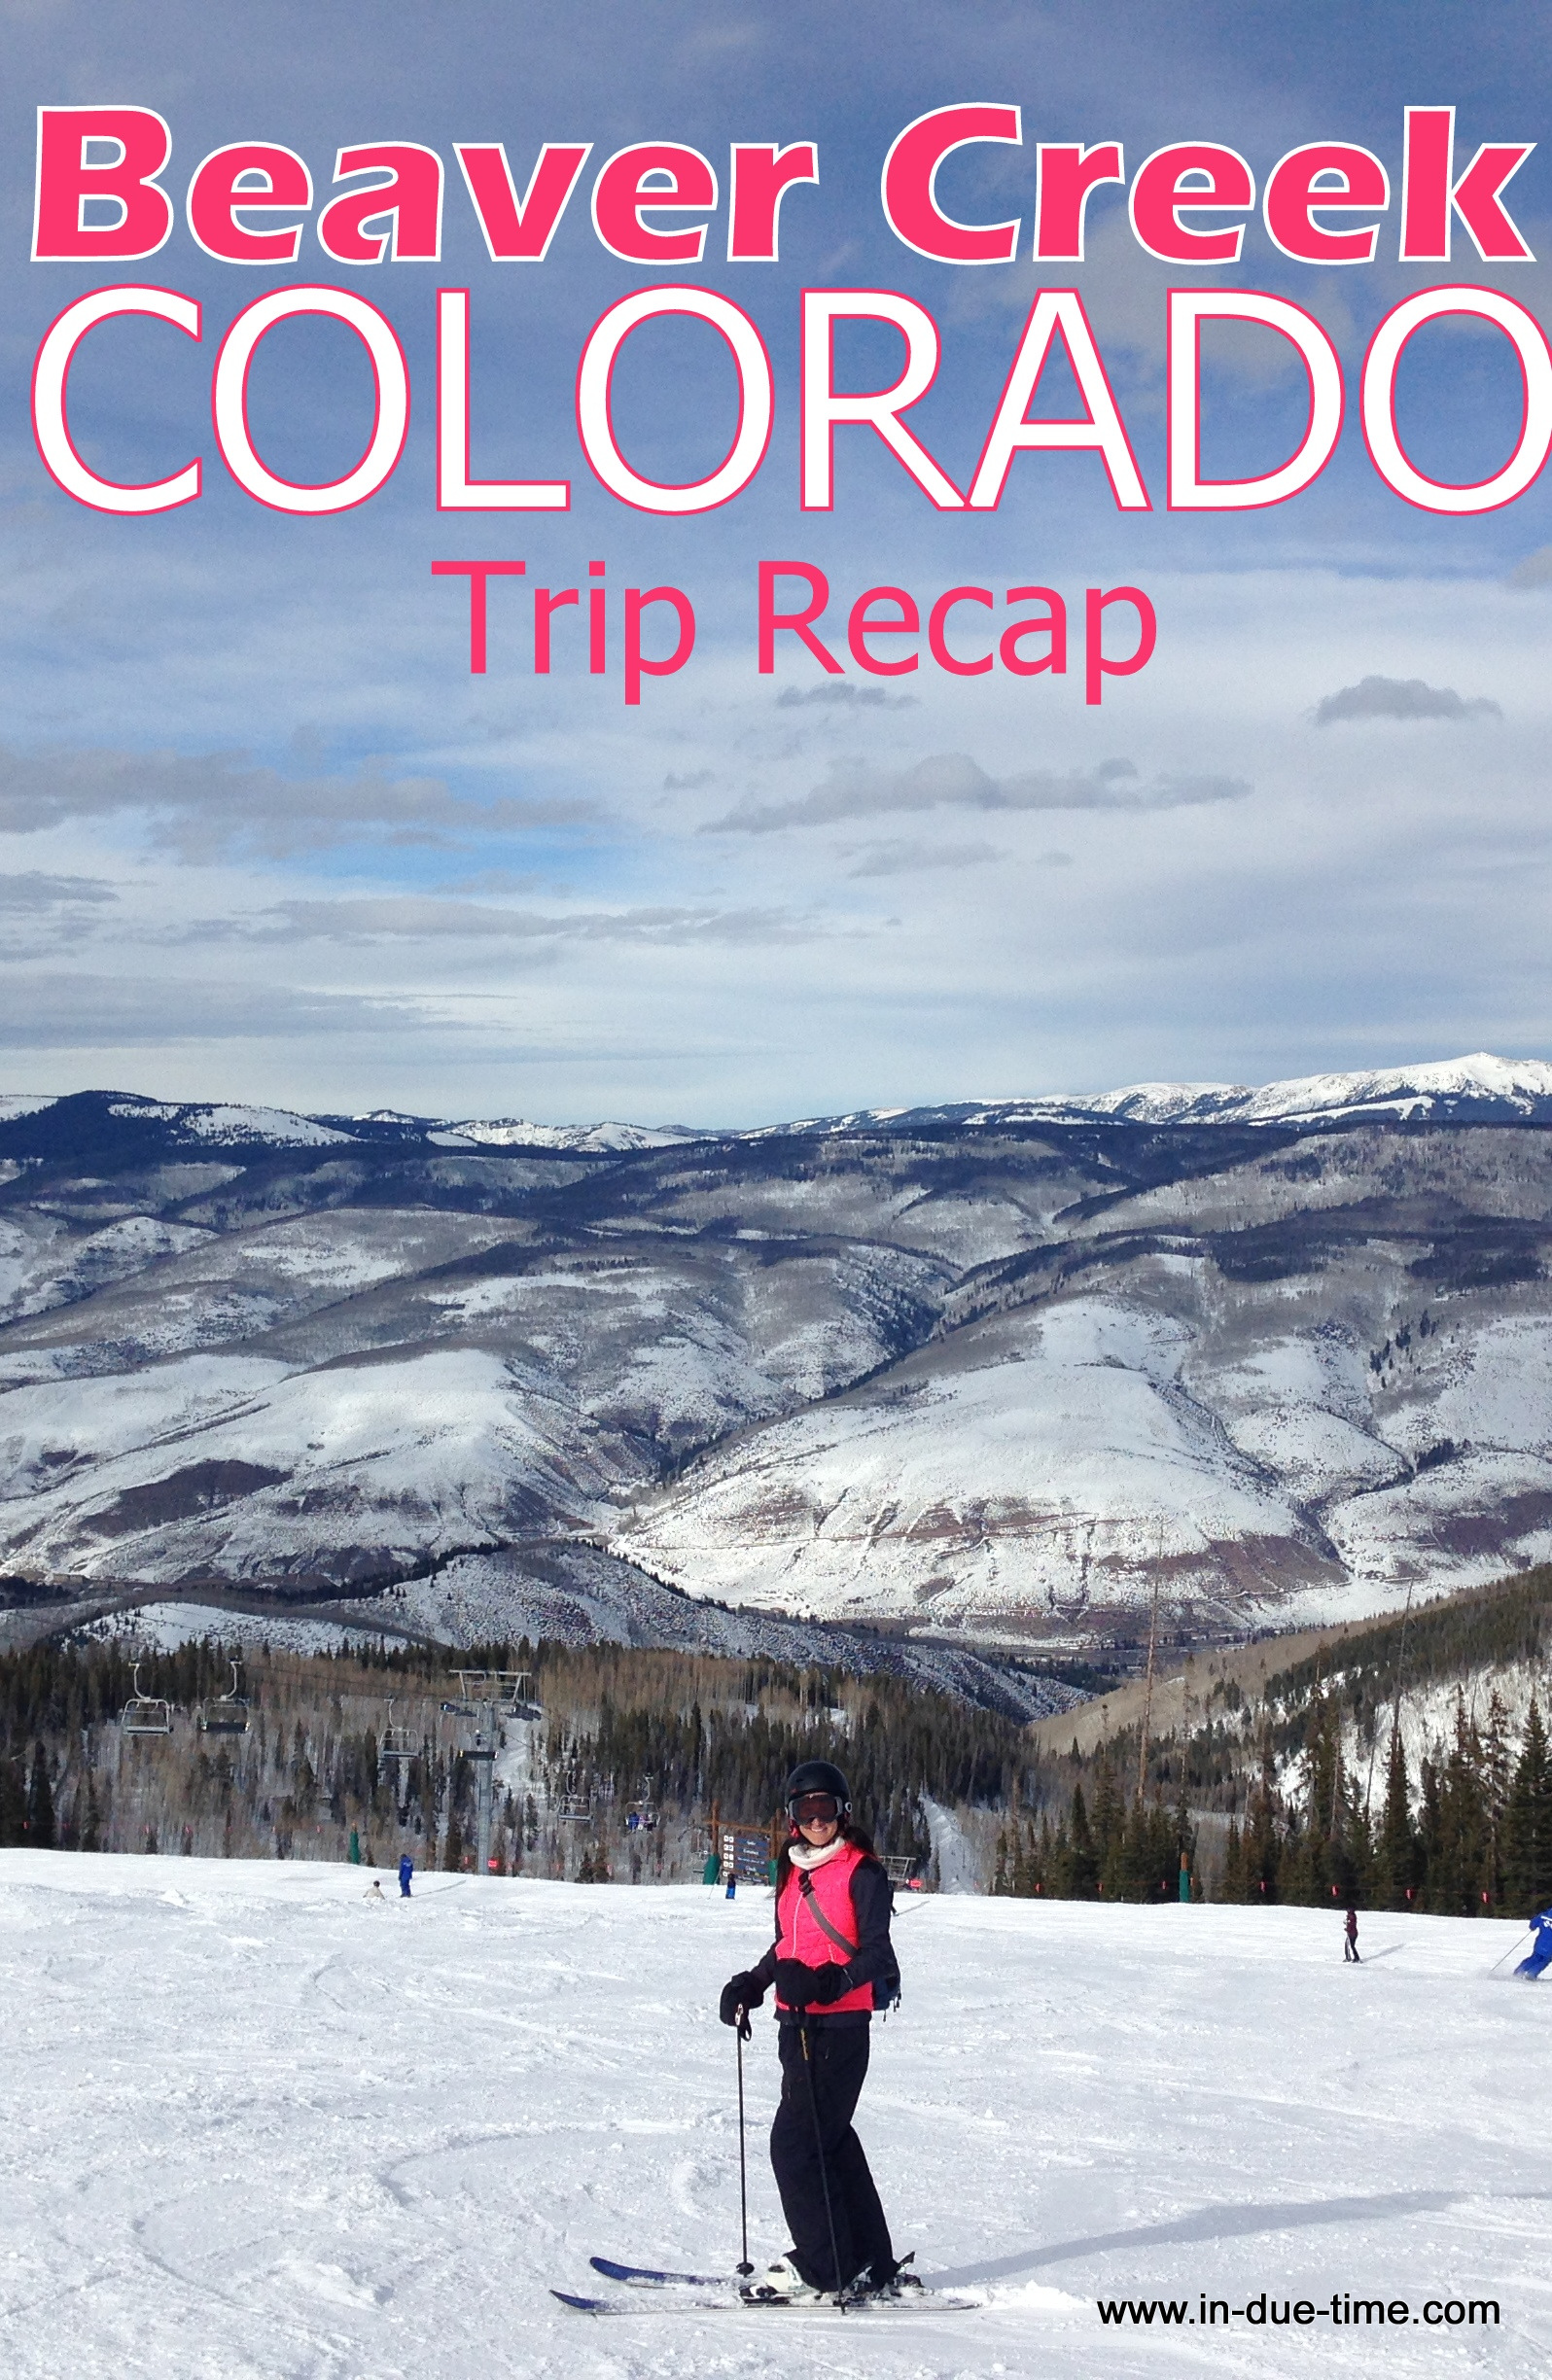 Beaver Creek Colorado Trip Recap-015